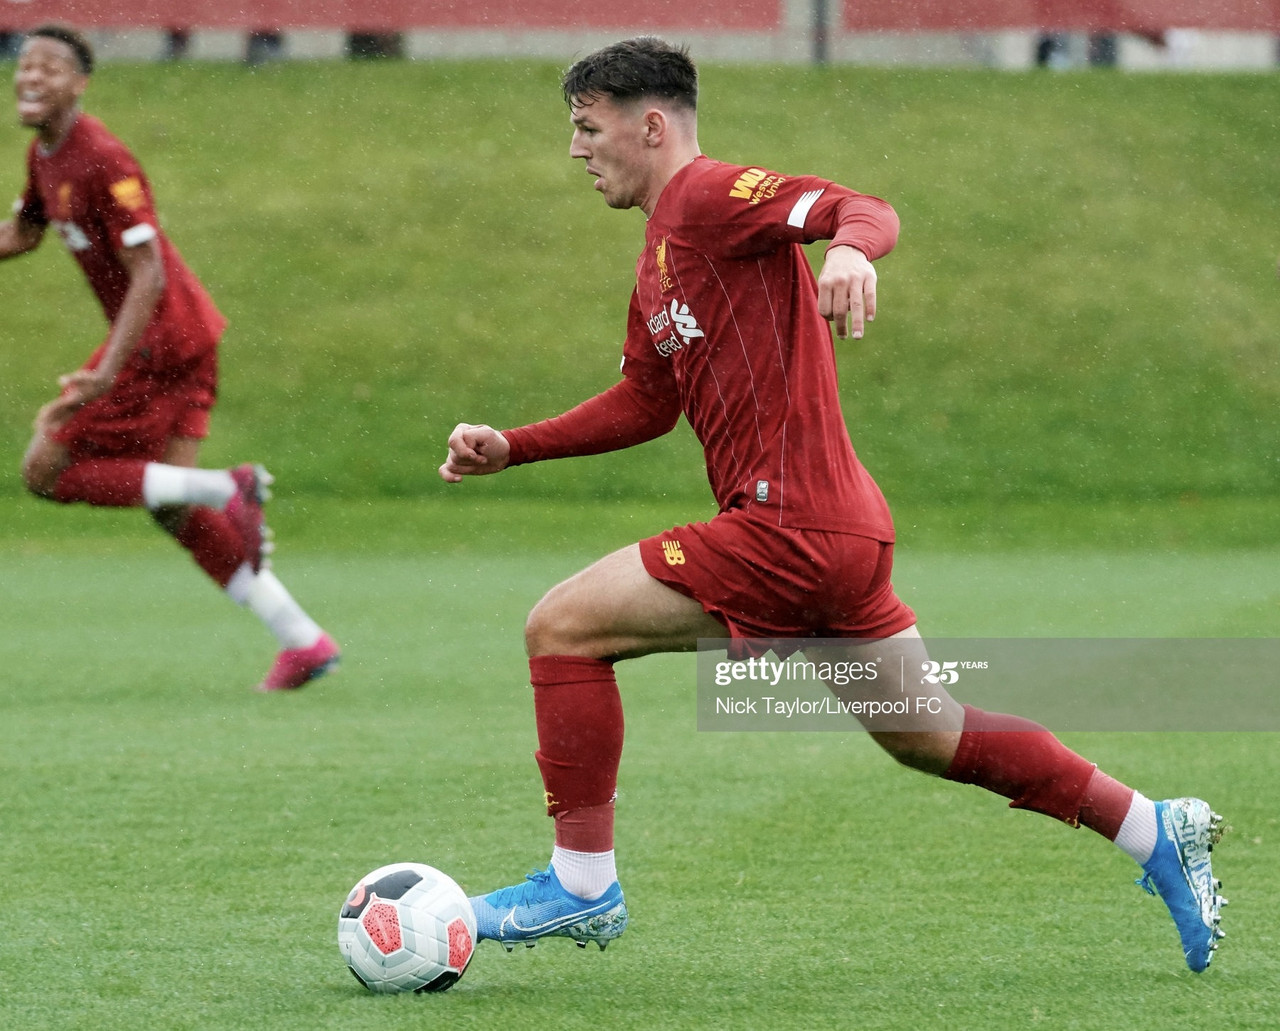 Bobby Duncan - The 19-year-old with another chance